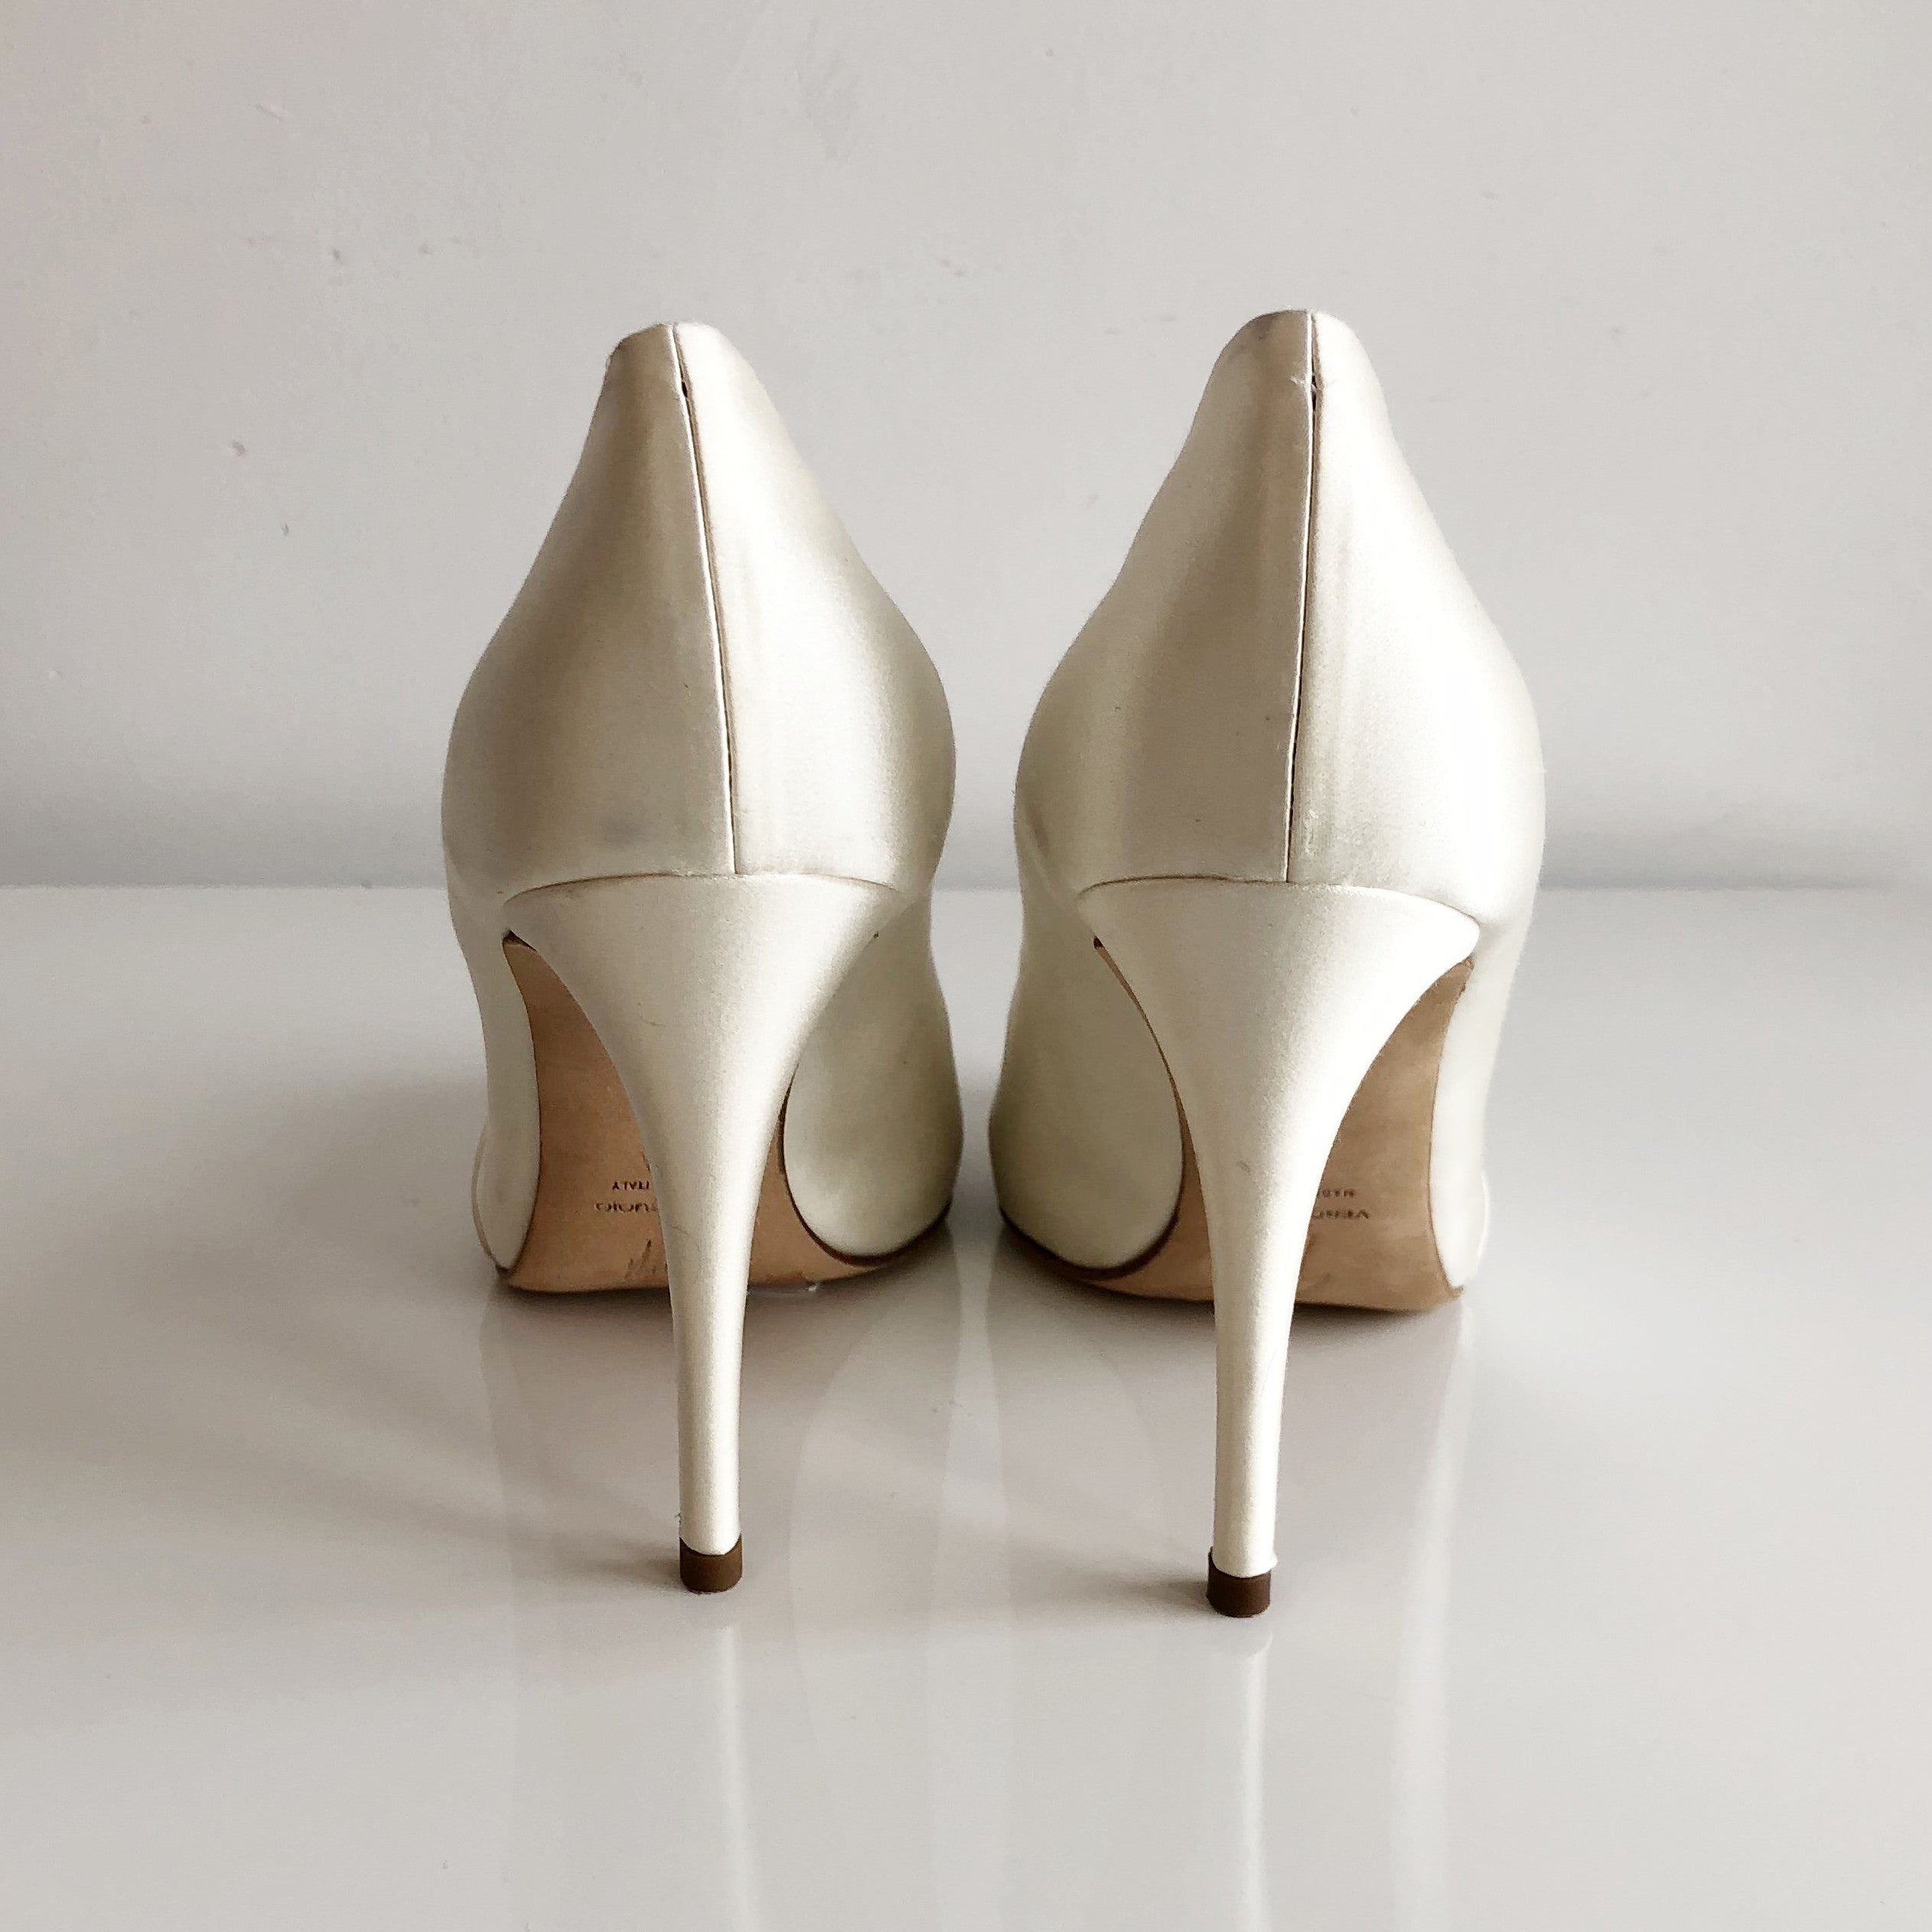 Authentic GIUSSEPPE ZANOTTI Ivory Satin Pumps Size 6